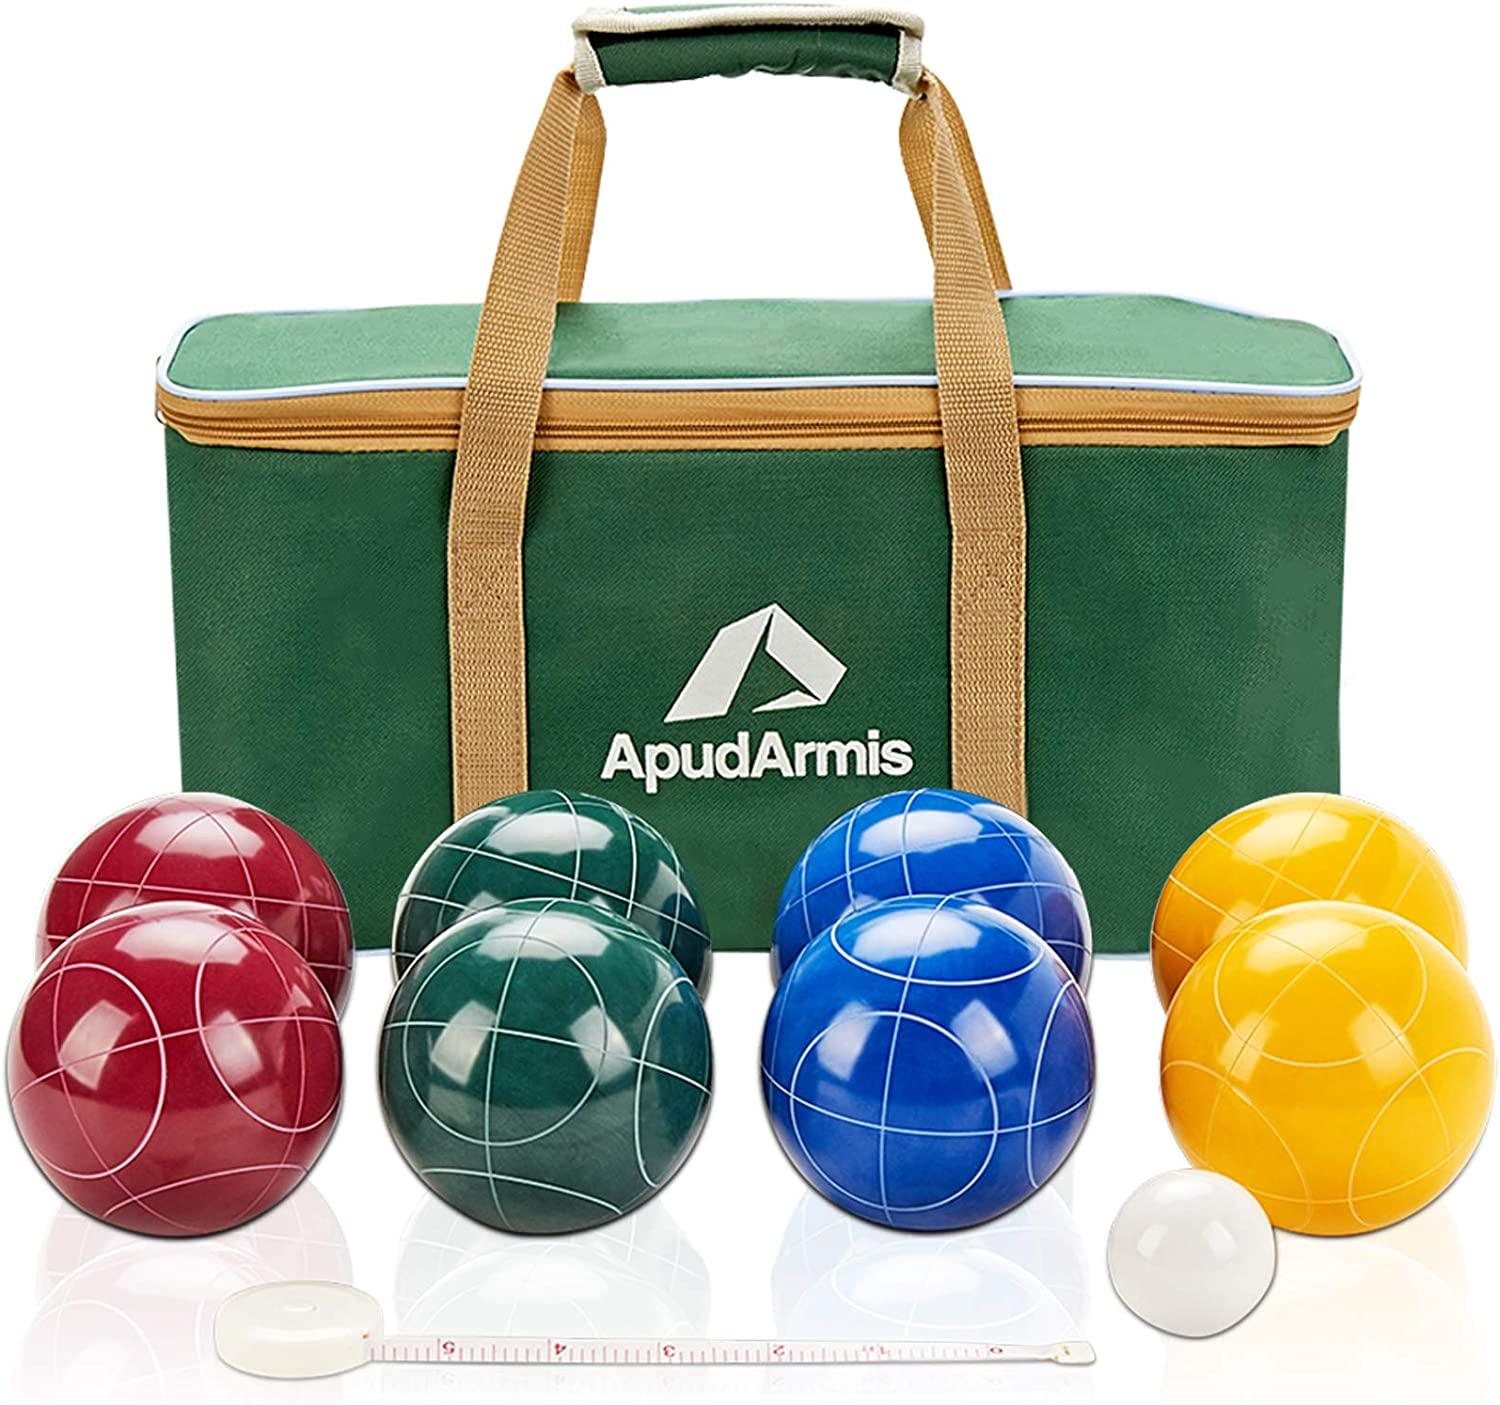 Apudarmis Bocce Balls Set Regulation Size 100mm Bocce Game For Outdoor Backyard Lawn Beach With 8 Pcs 100 Resin Balls 1 Pallino Nylon Carrying Case Measuring Rope Amazon Co Uk Sports Outdoors